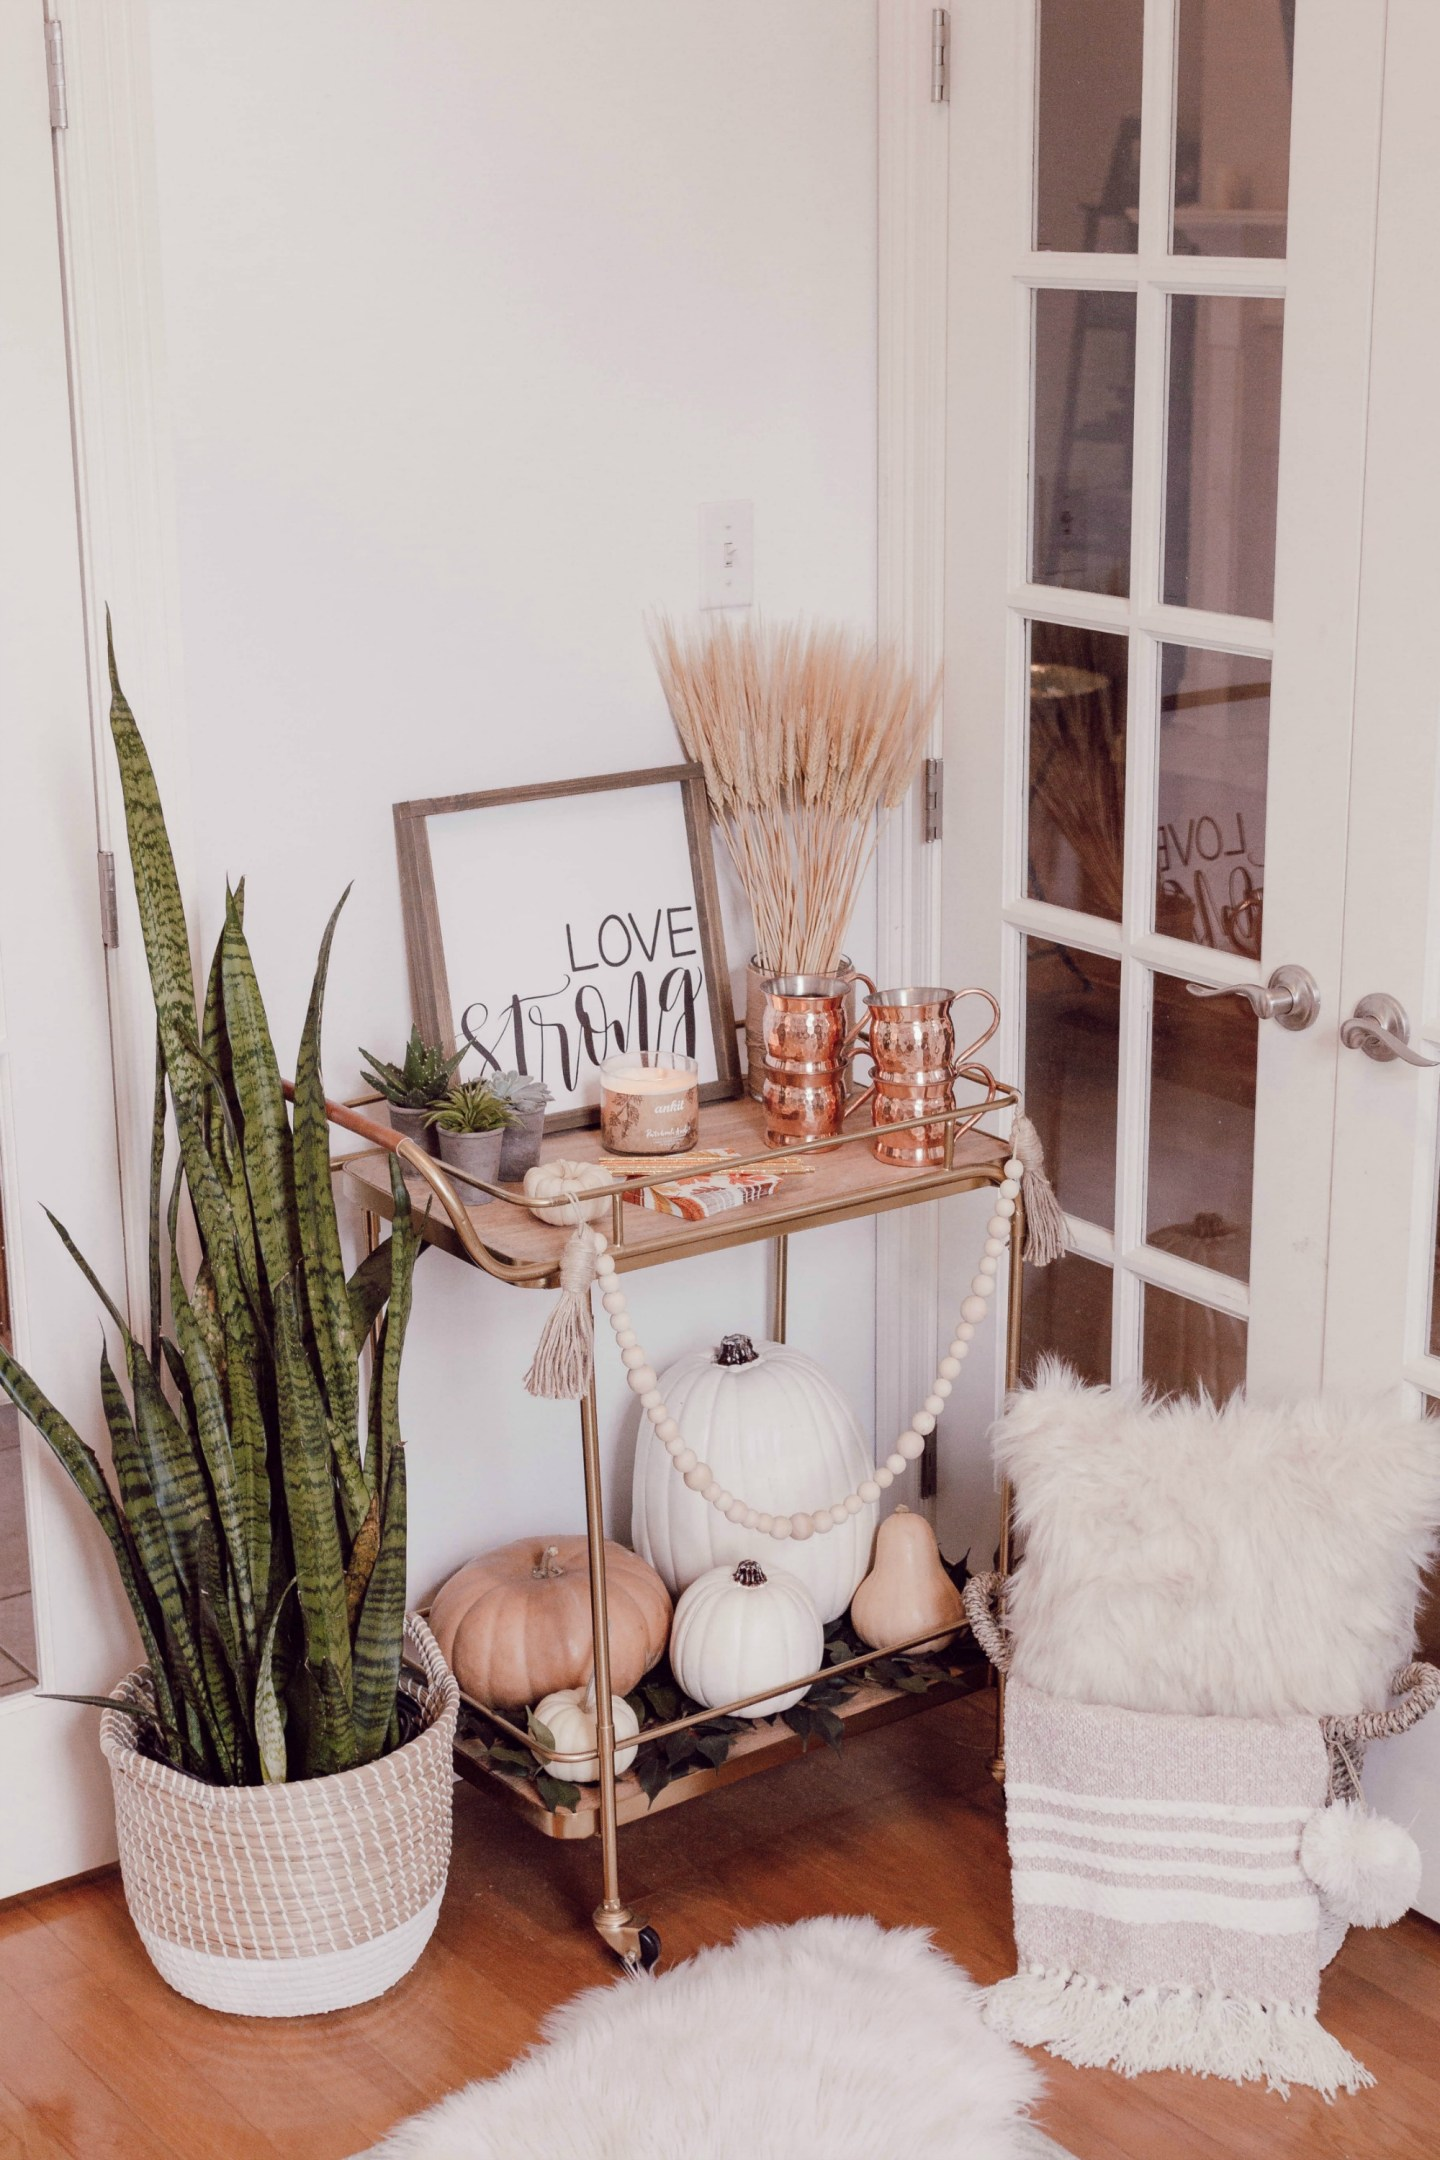 How to style your bar cart for fall